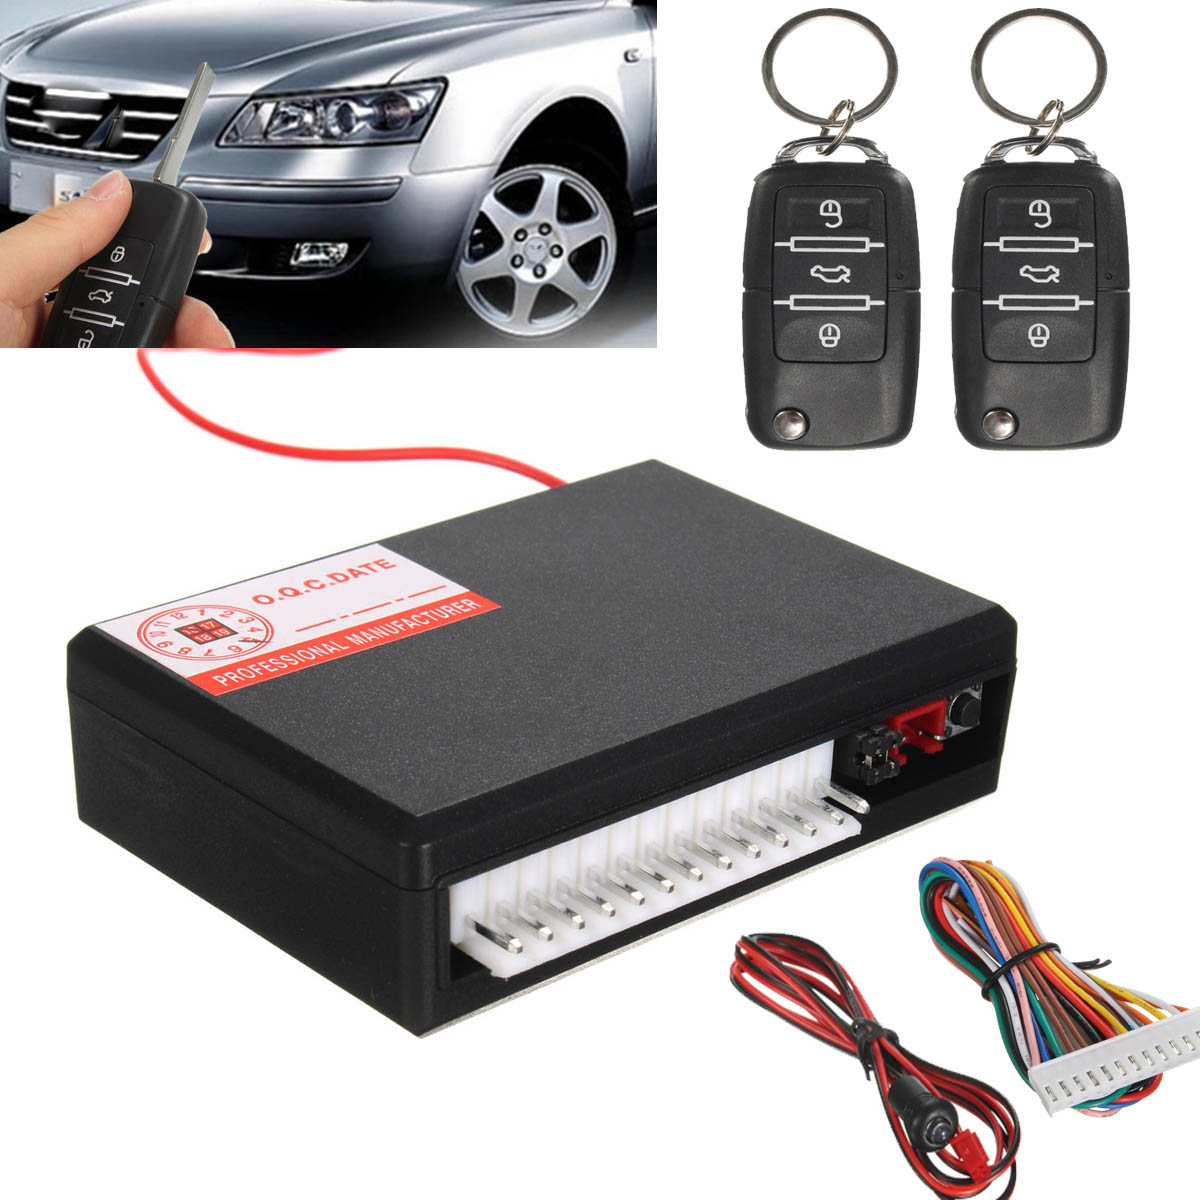 Car auto remote control central kit door lock locking for Keyless entry system